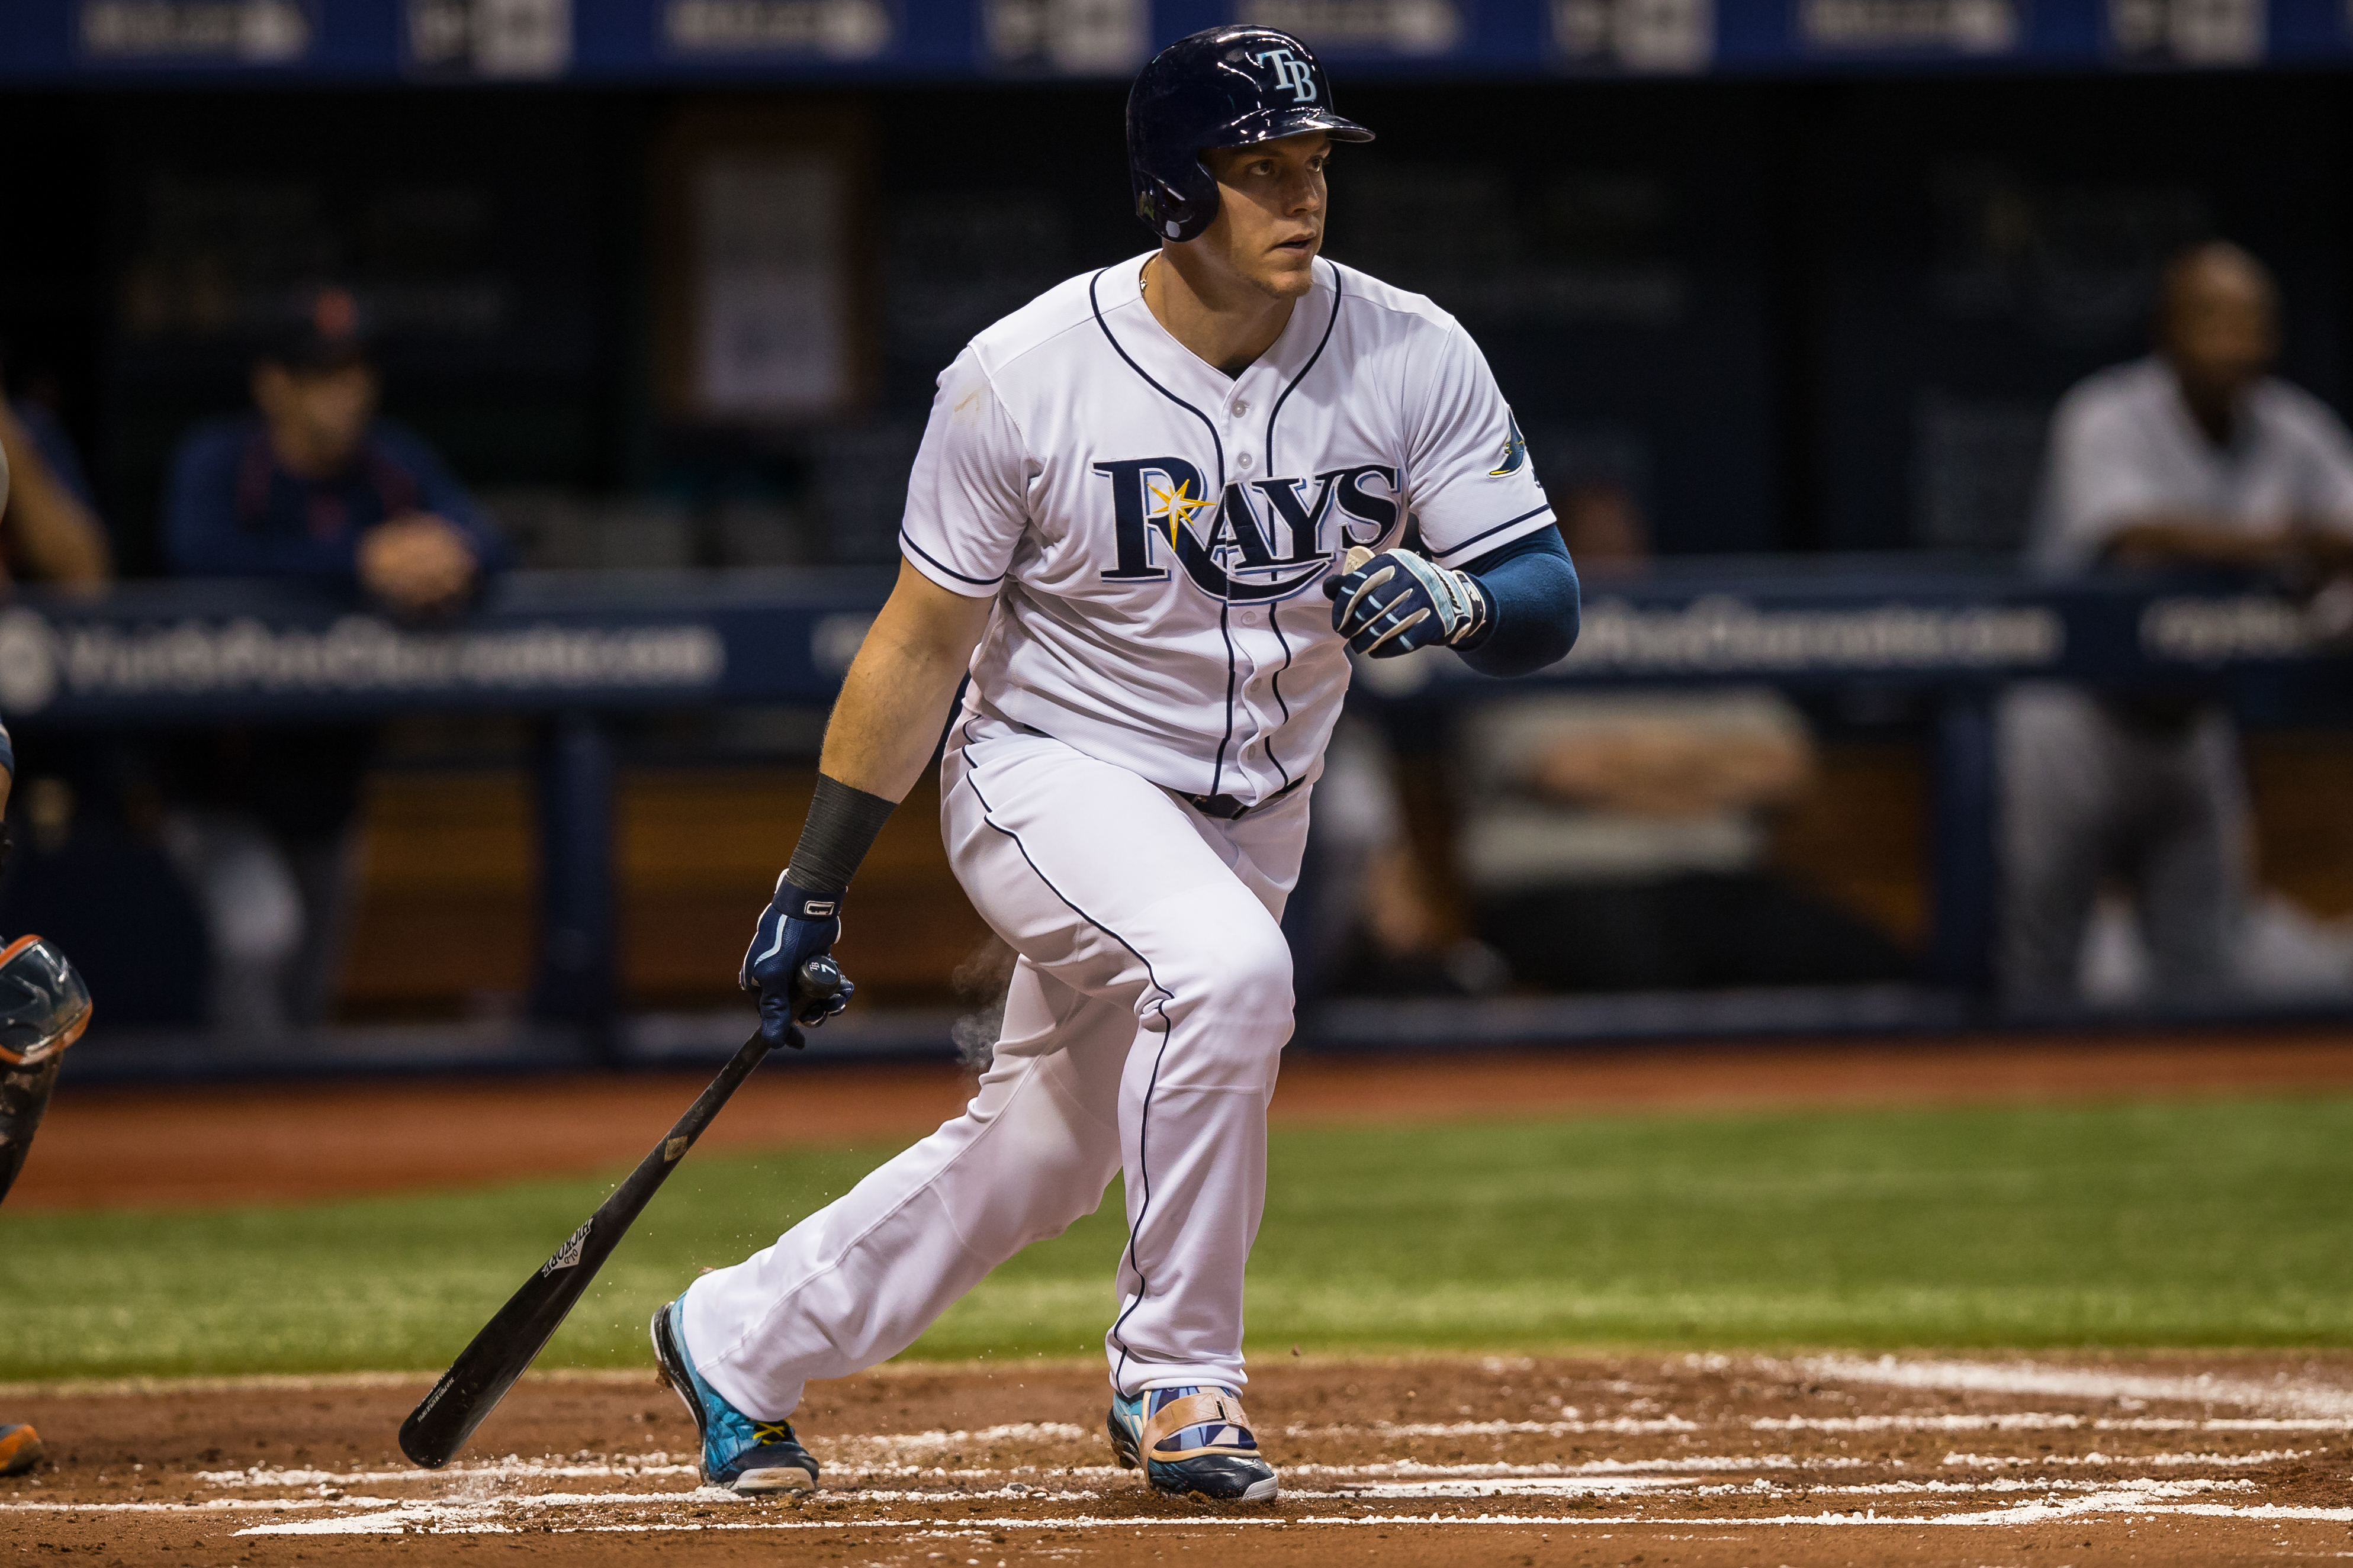 Morrison homered to add the Rays' final run./STEVEN MUNCIE